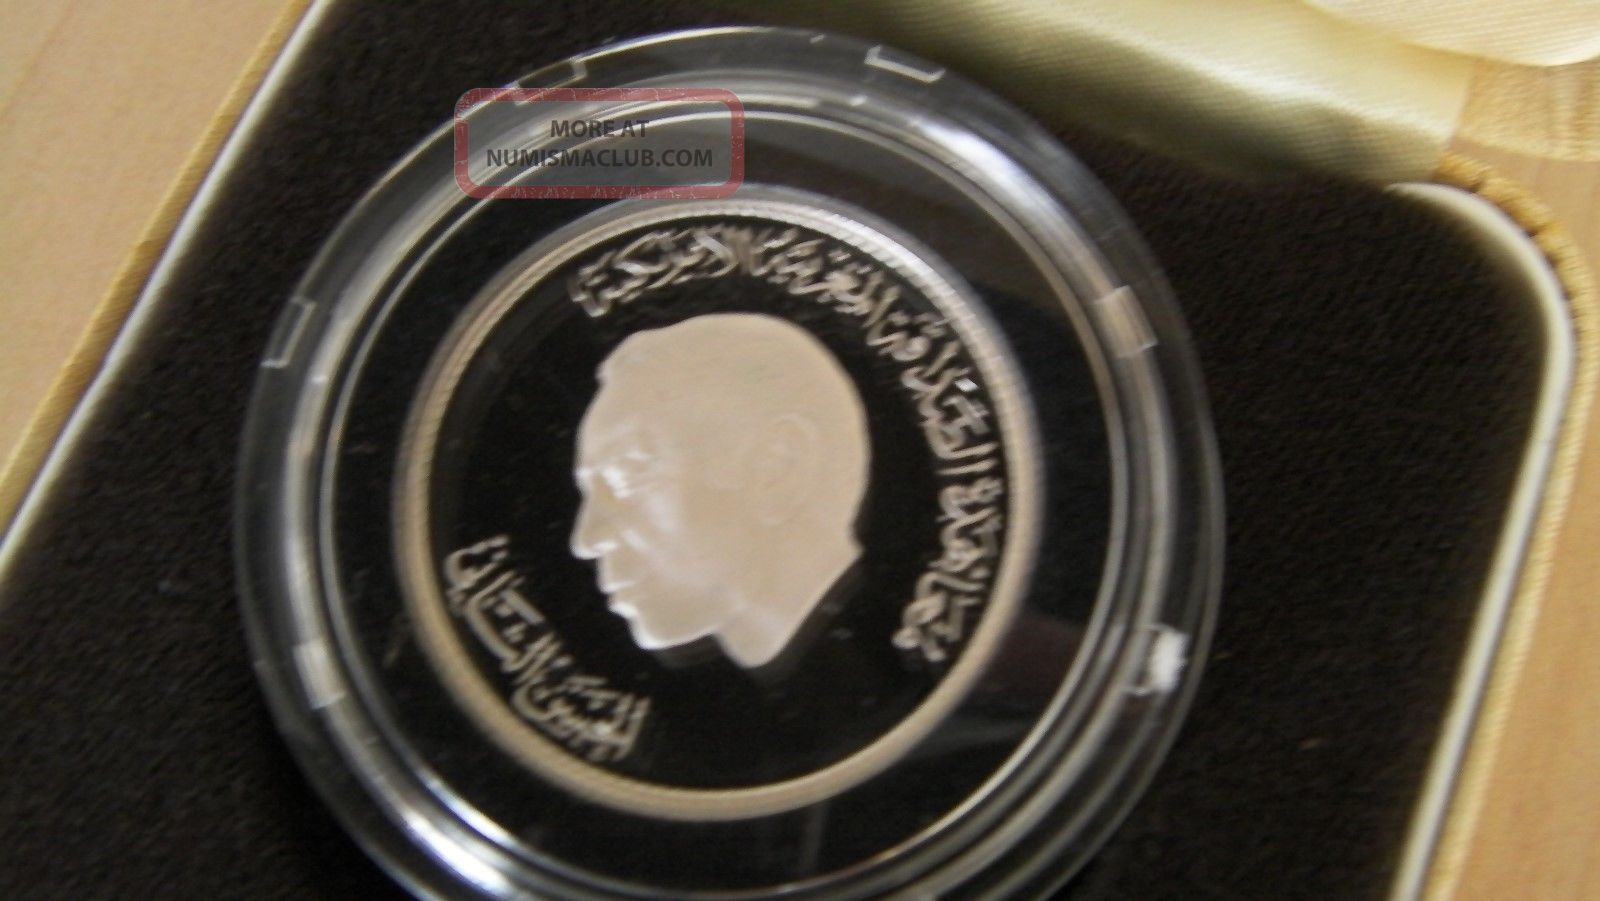 Morocco 200 Dirhams 1987 Silver American Friendship Treaty Coin